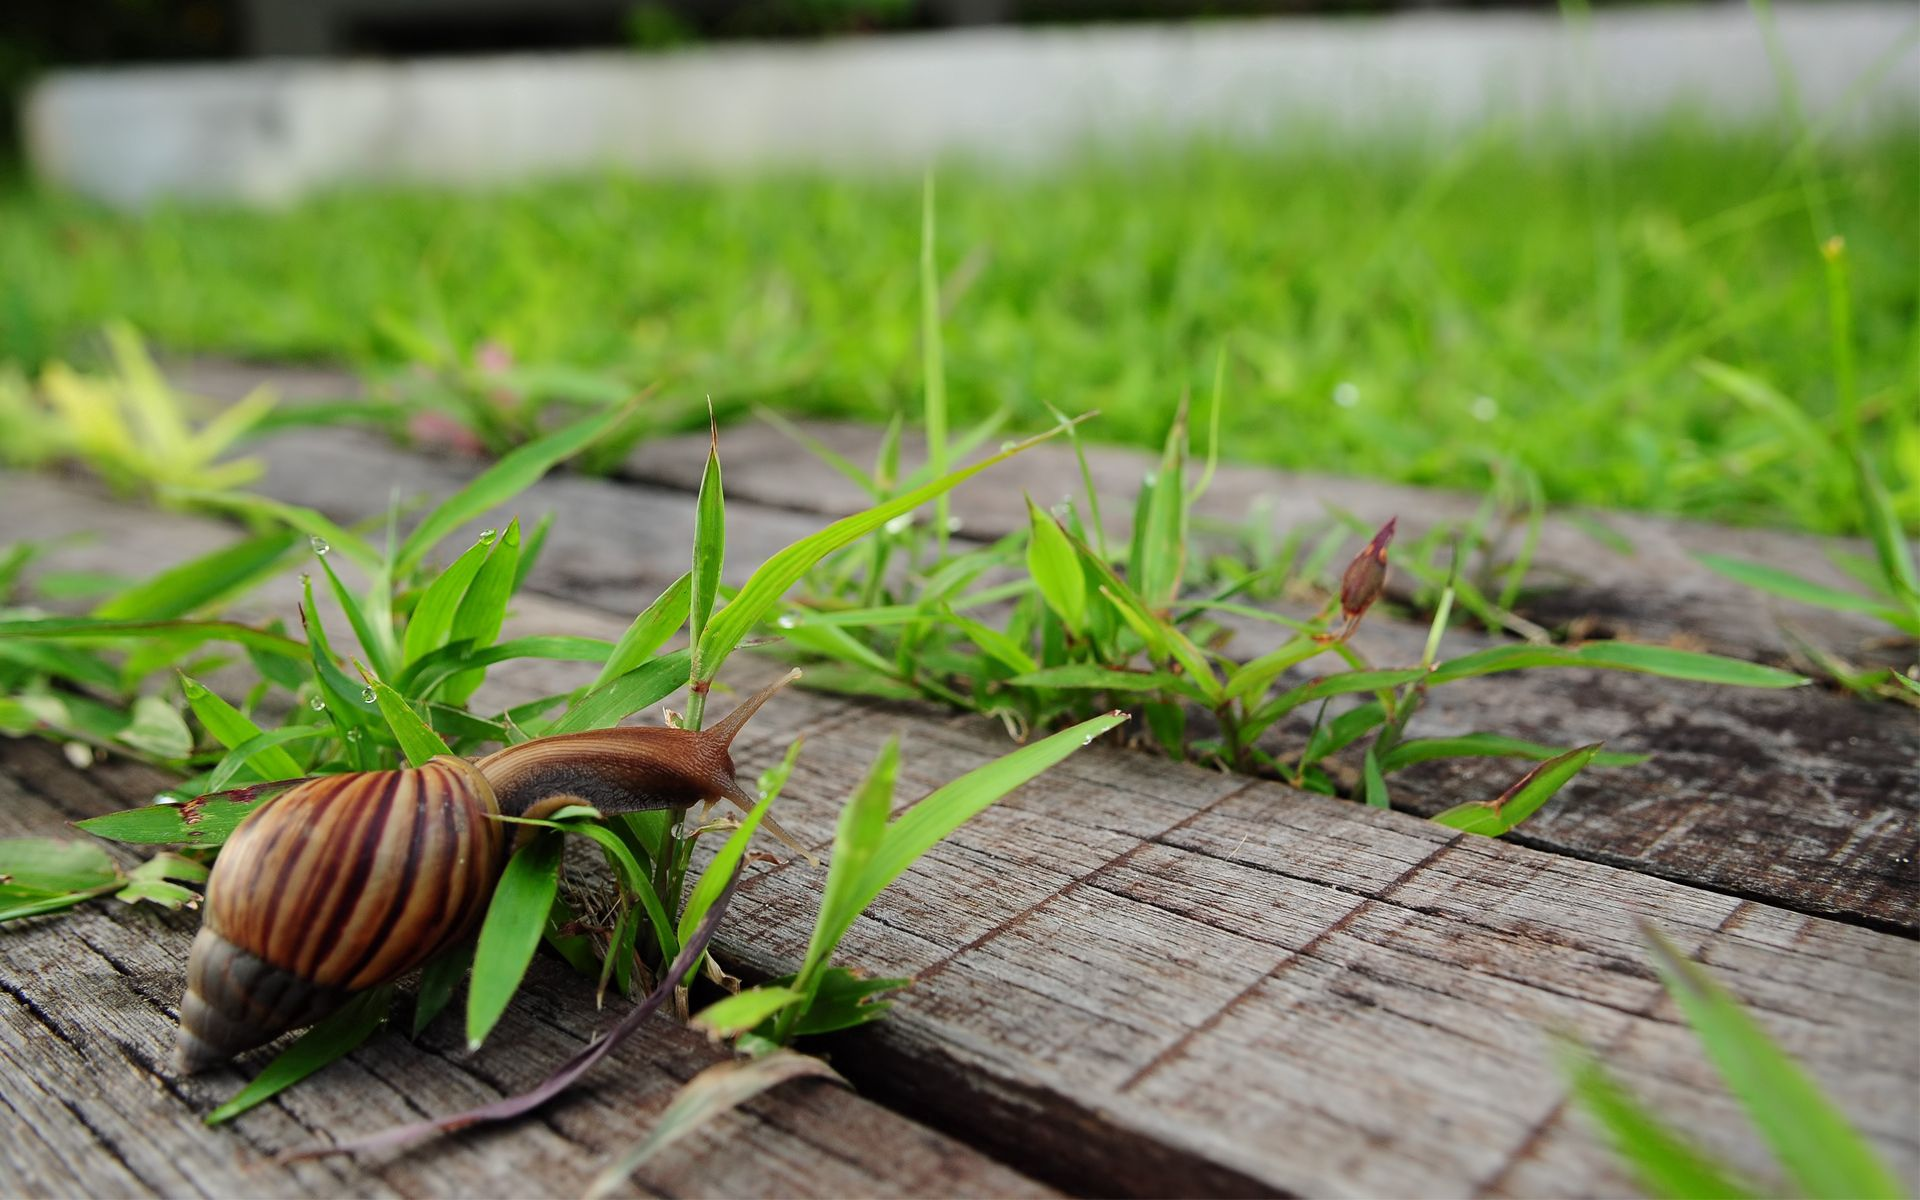 131706 download wallpaper Animals, Snail, Grass, Wood, Wooden, Crawl screensavers and pictures for free